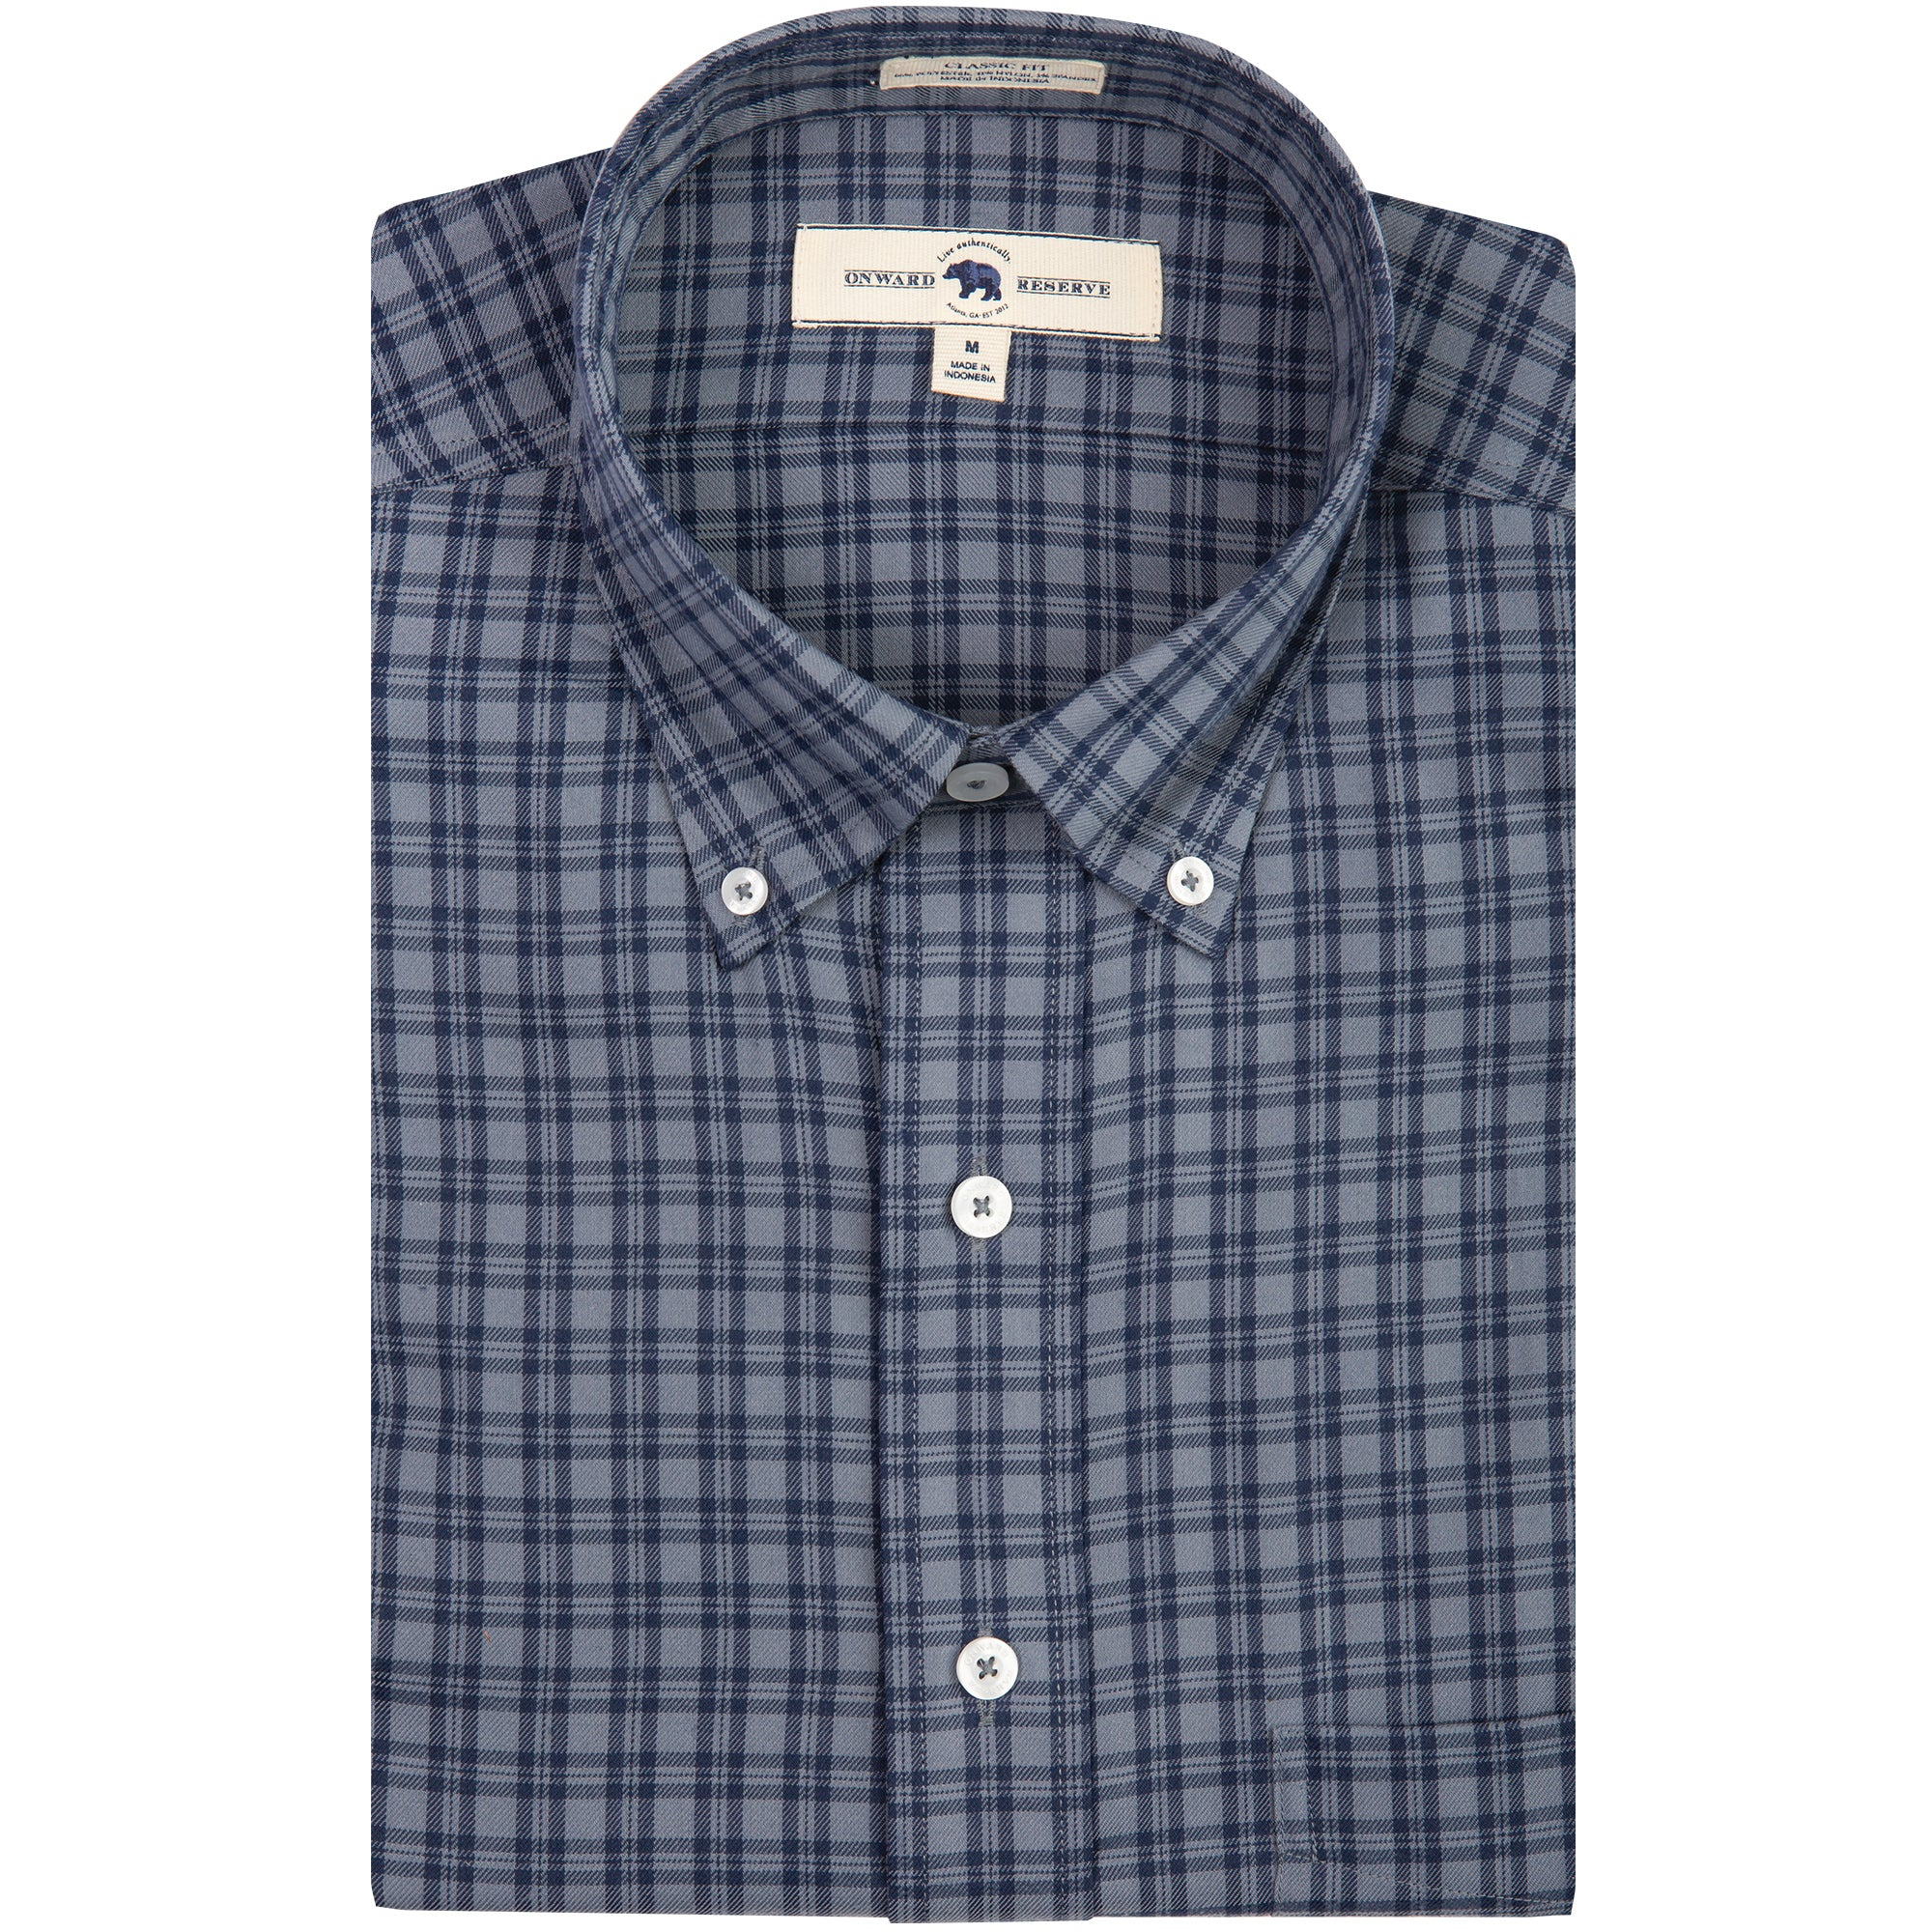 Grey/Navy Plaid Classic Fit Performance Twill Button Down